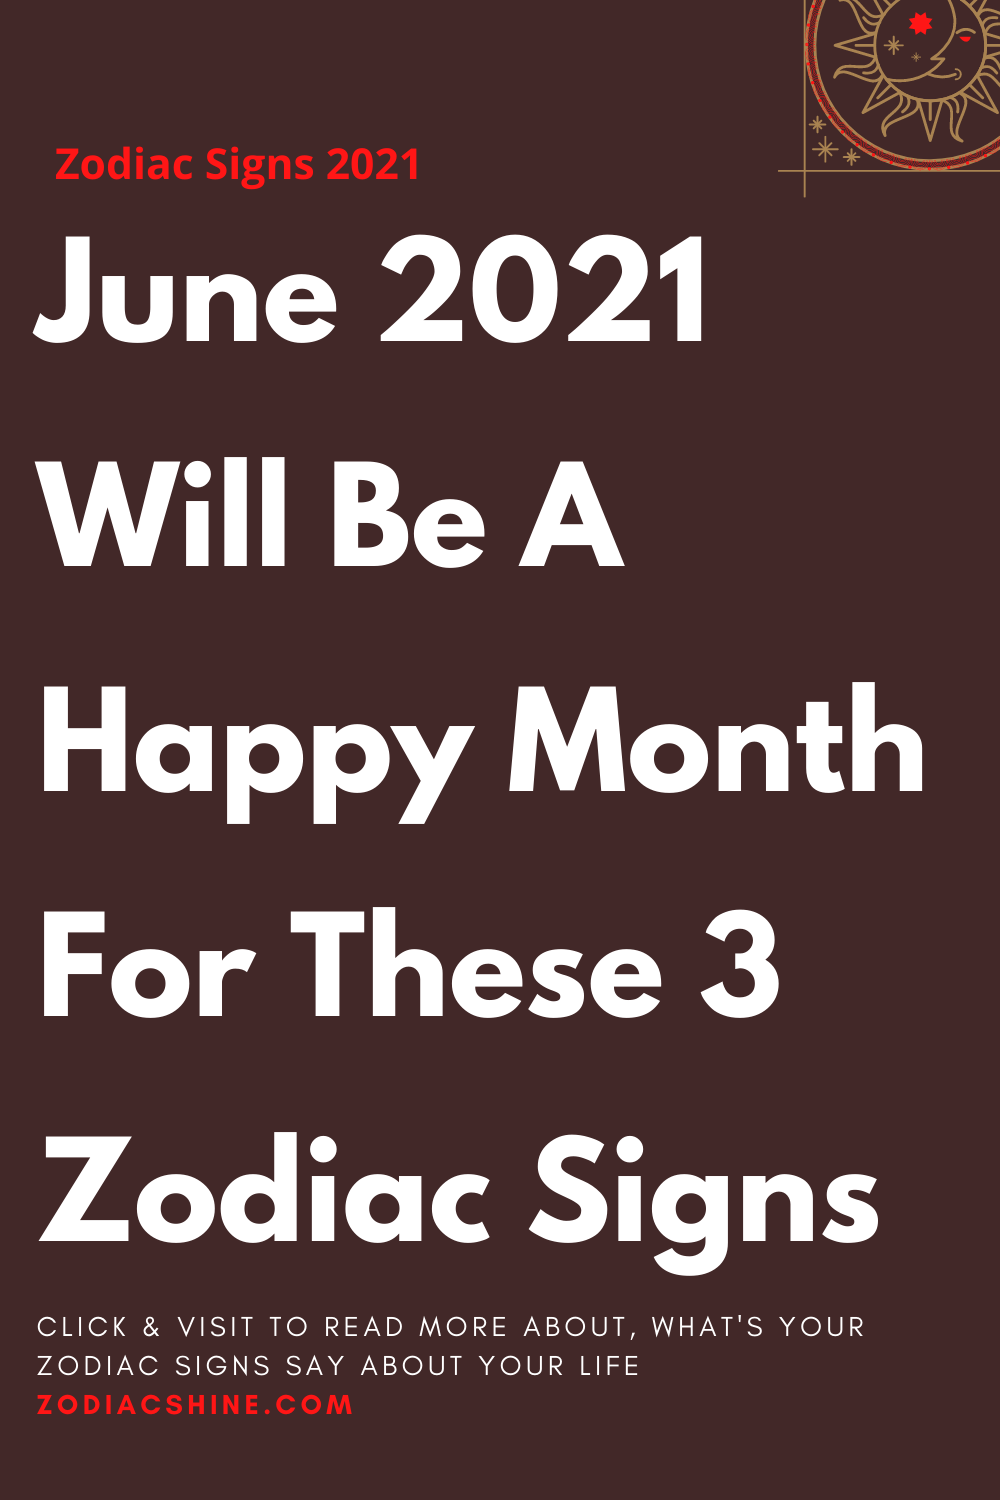 June 2021 Will Be A Happy Month For These 3 Zodiac Signs